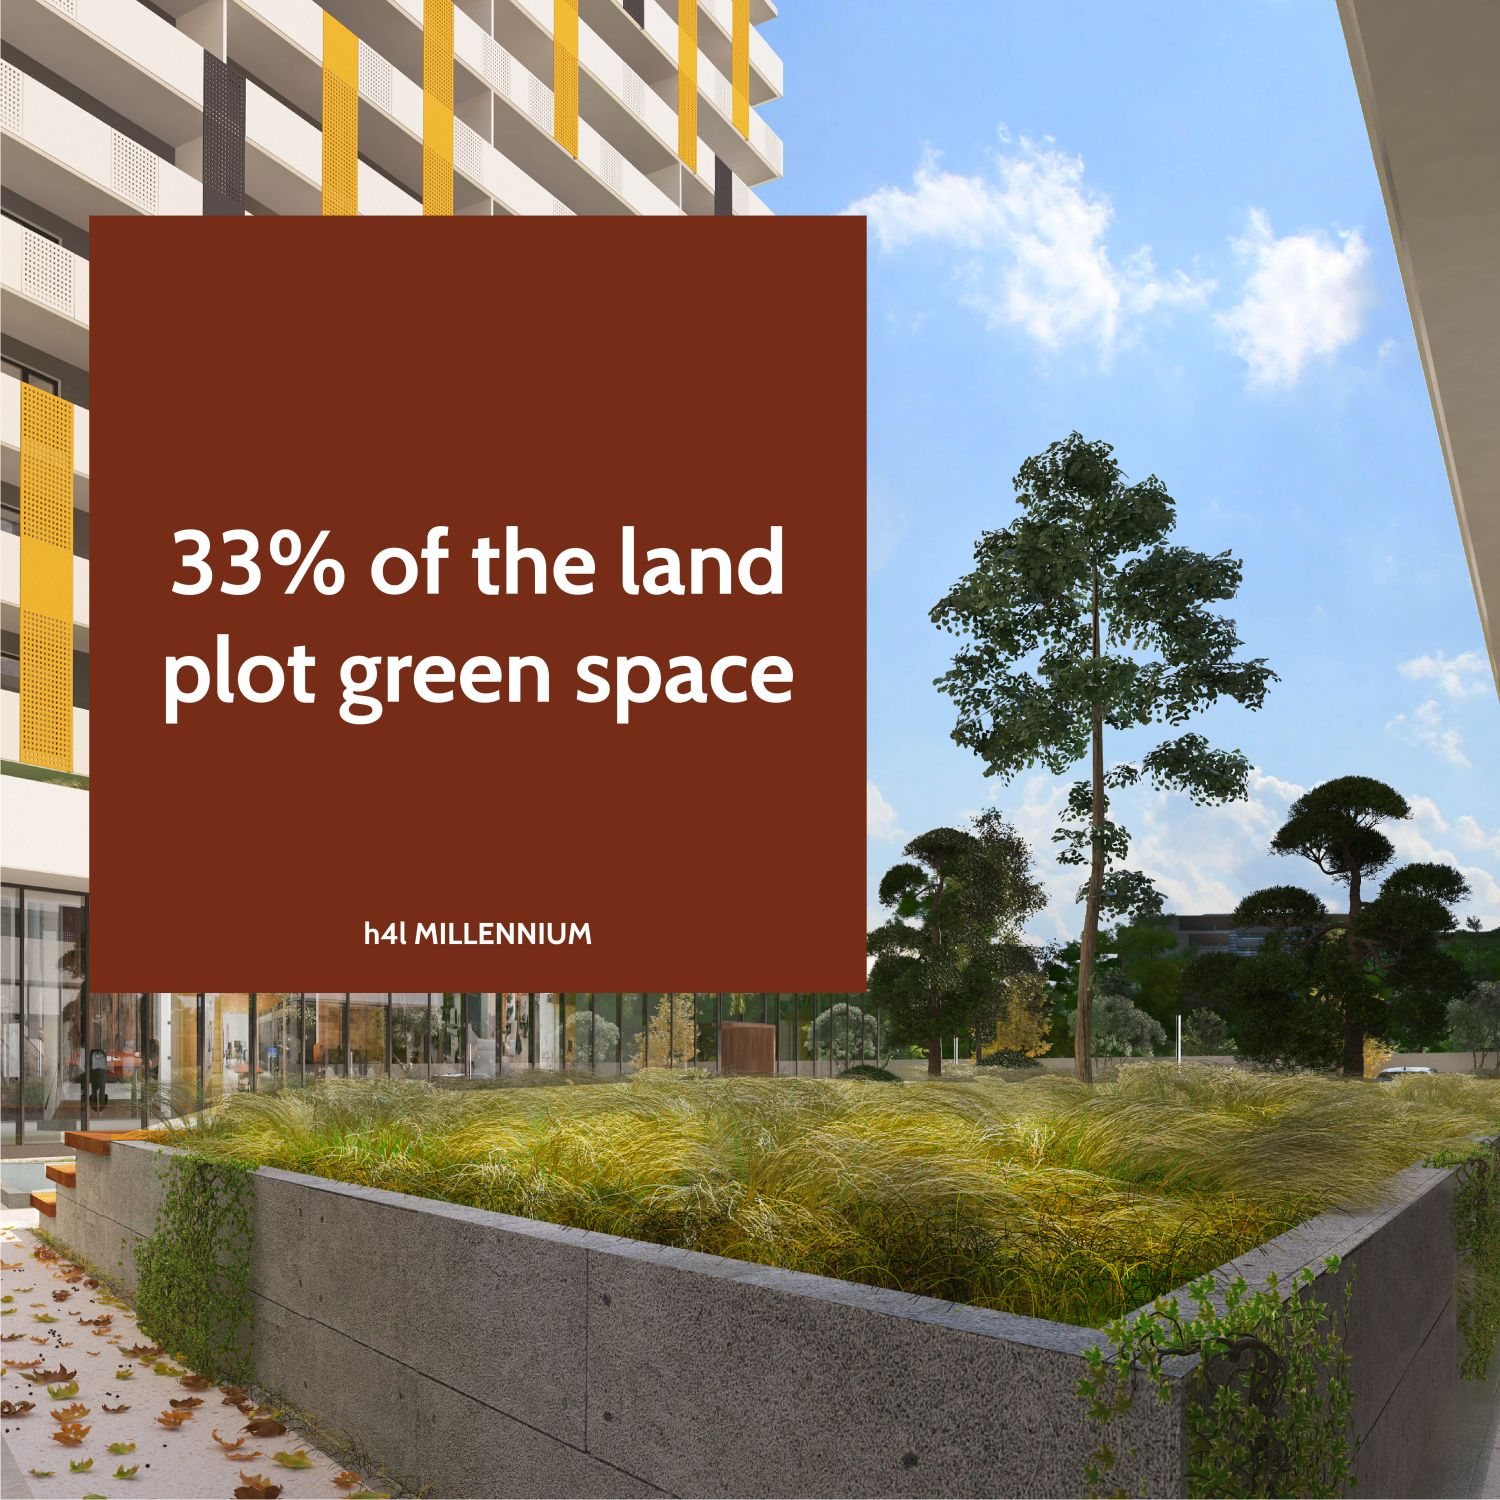 Green area on 33% of the land plot